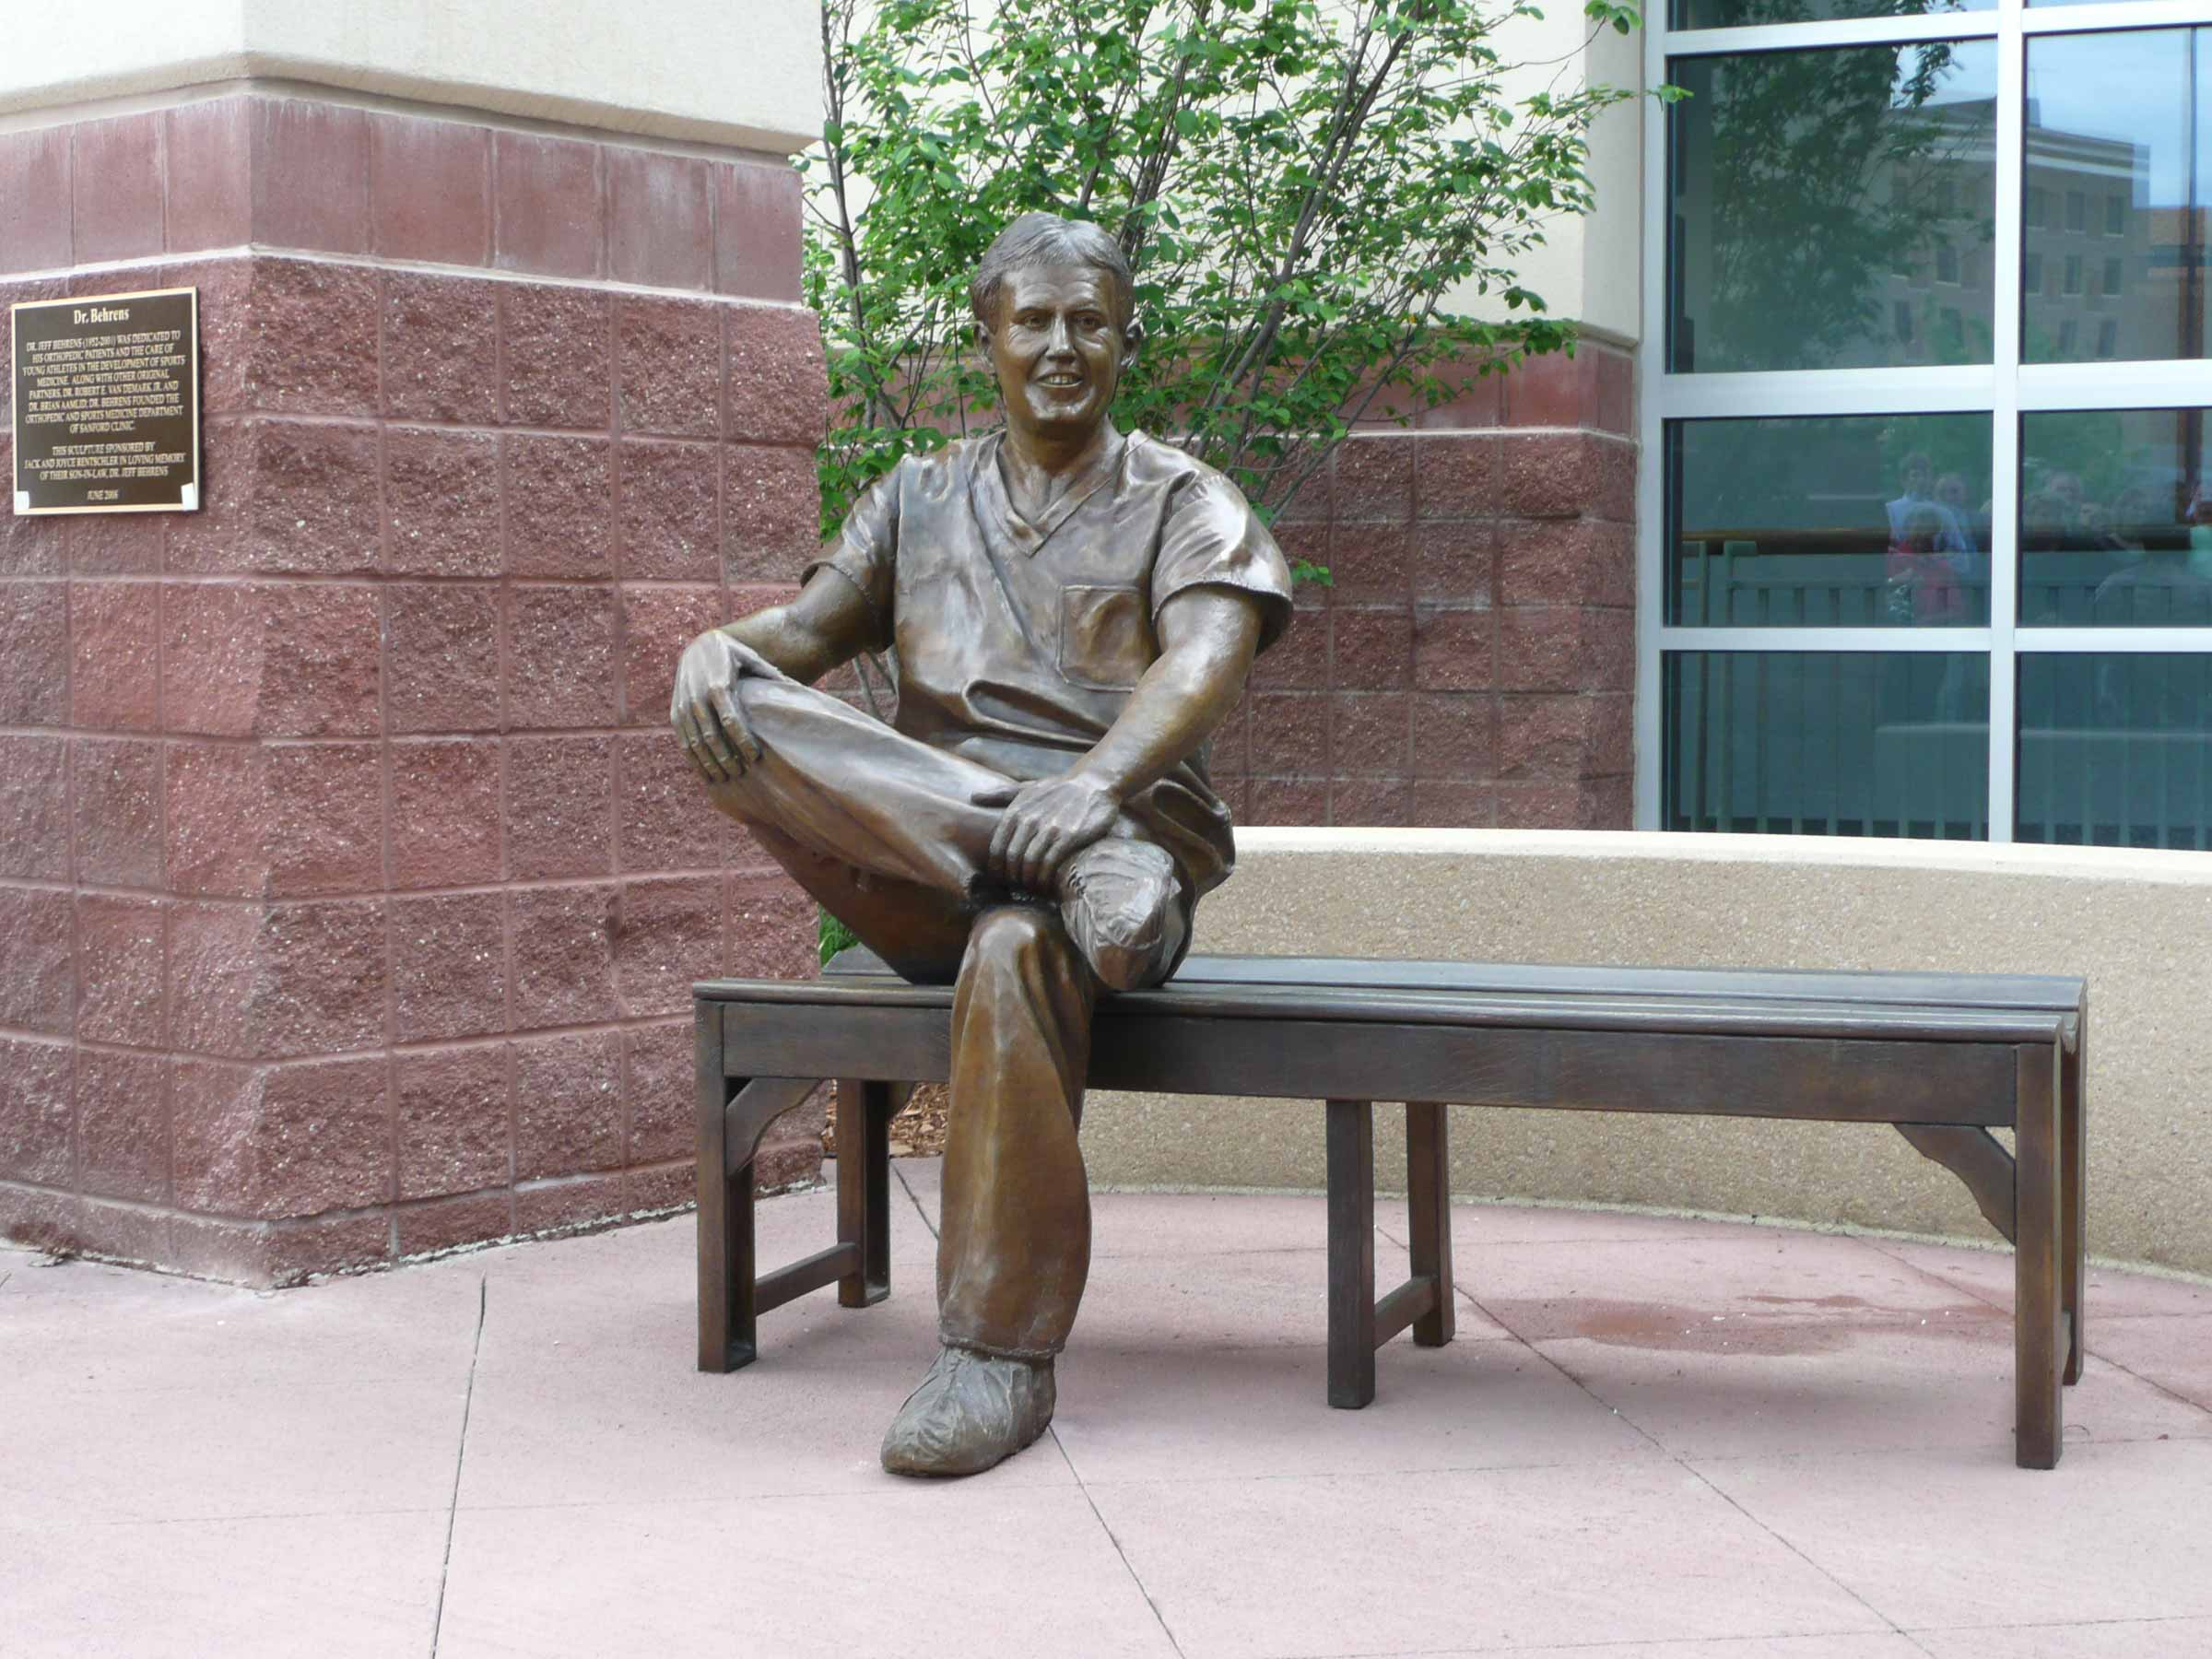 Hospital statue of Dr. Behrens